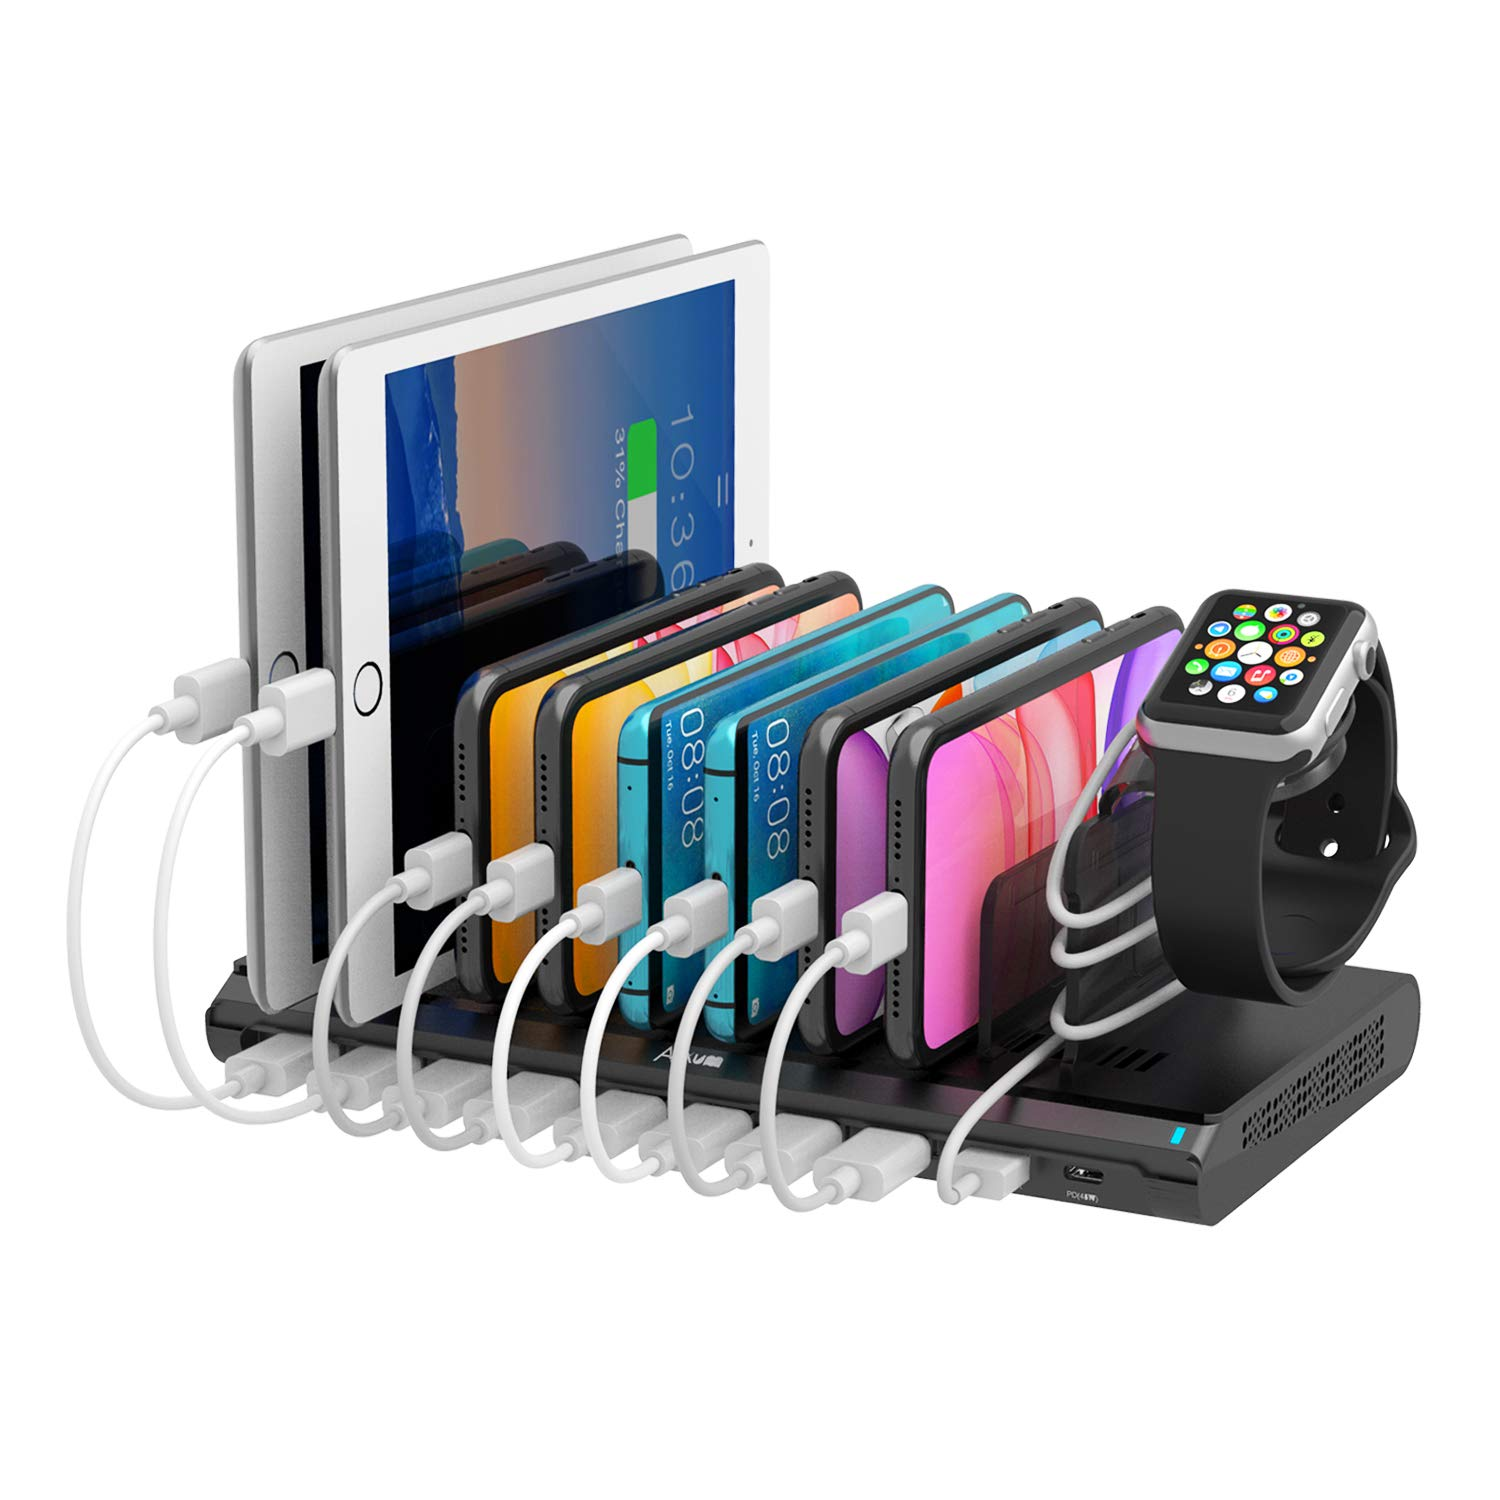 Alxum USB C Charging Station, 120W 10 Port USB Charger Dock, 45W PD&QC 3.0 Power Delivery Port with iWatch Charger Stand, Compatible with MacBook Pro/Air, iPad Pro 2018, iPhone, Galaxy, Pixel, Kindle